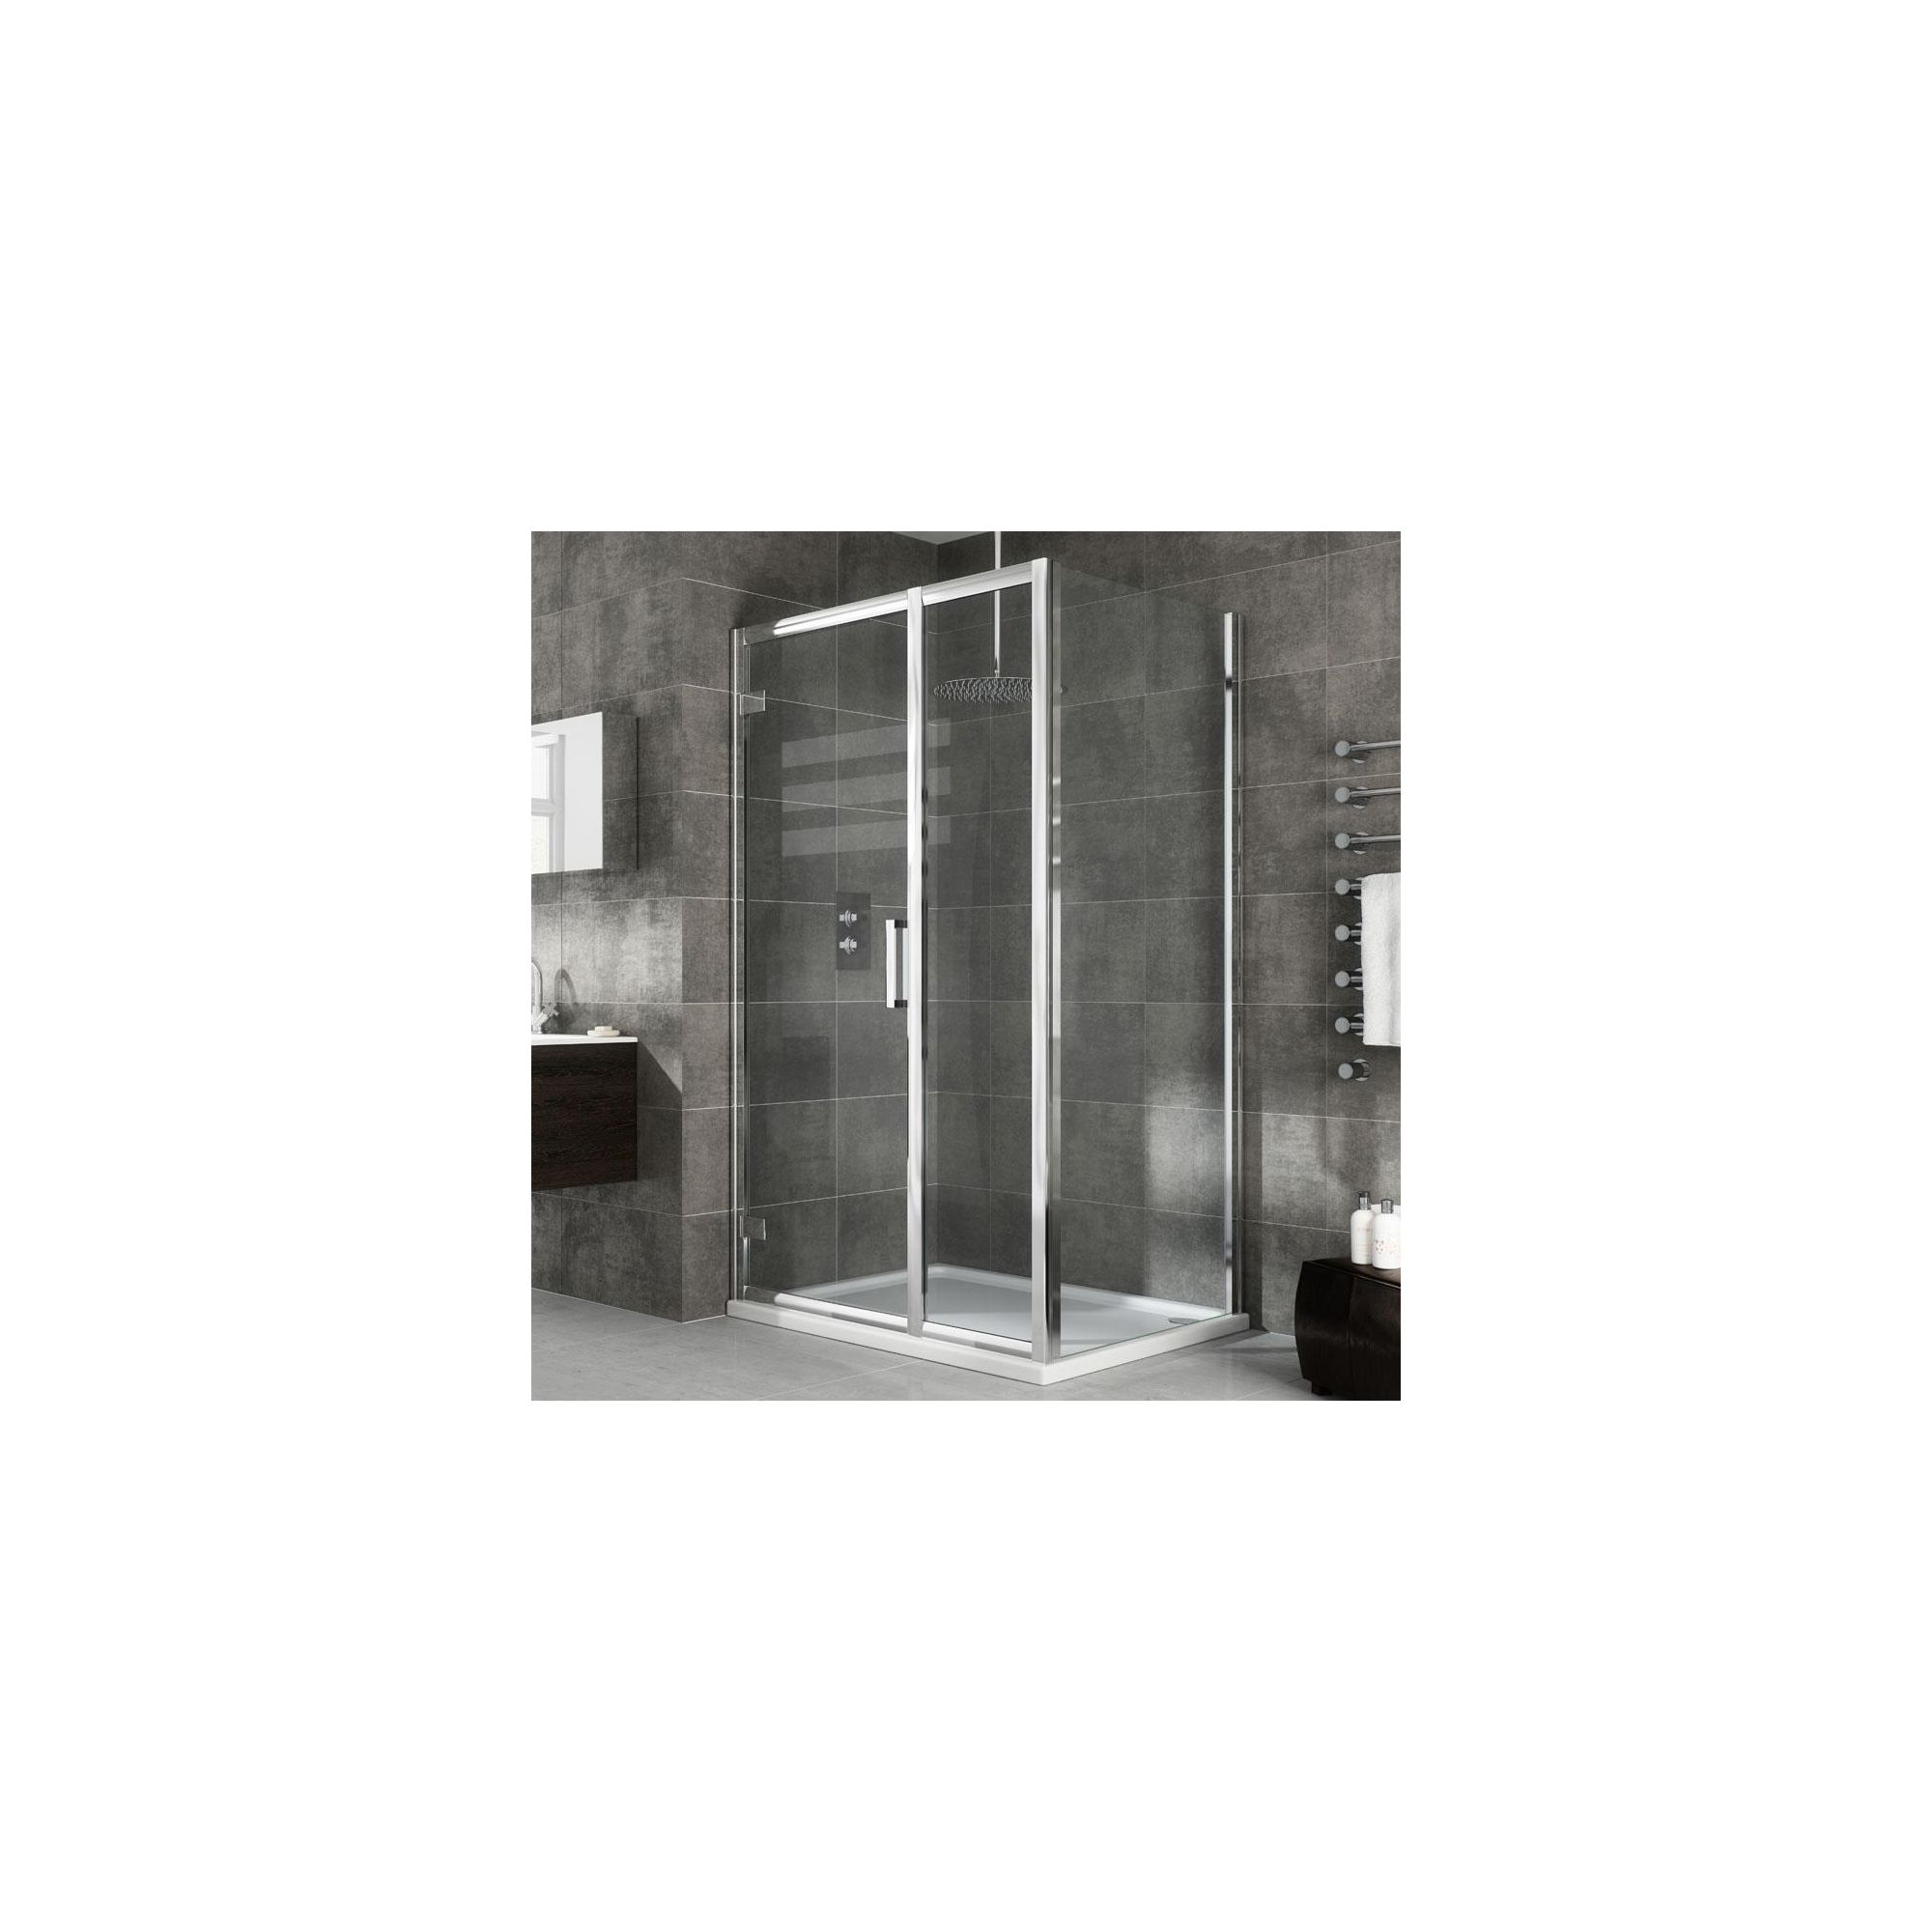 Elemis Eternity Inline Hinged Shower Door, 1500mm Wide, 8mm Glass at Tesco Direct